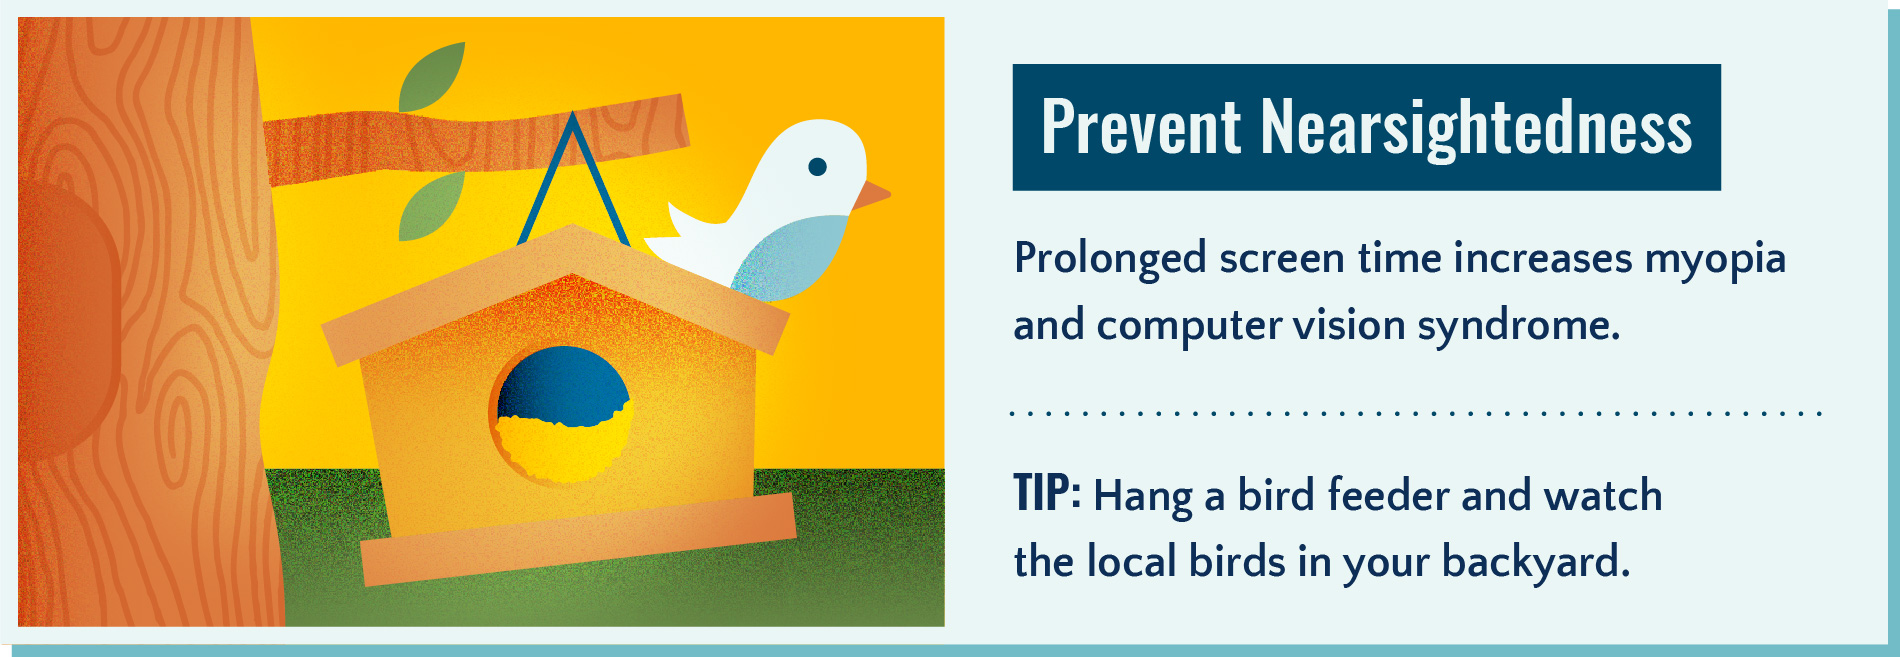 Spending time outside looking at far away objects can help prevent nearsightedness.